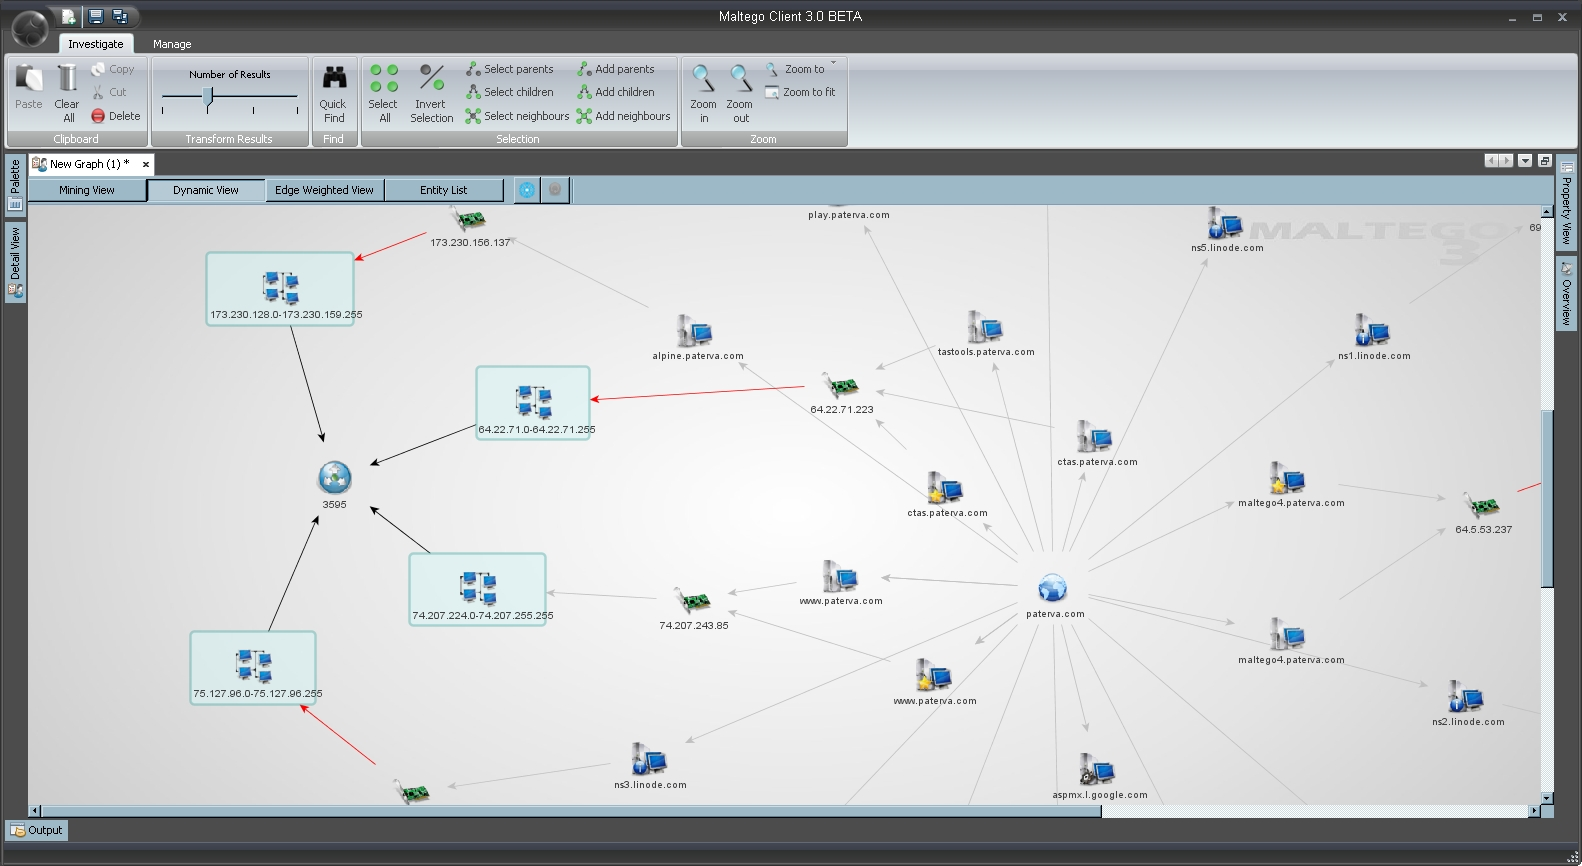 Maltego screenshot sectools Open source diagram tool